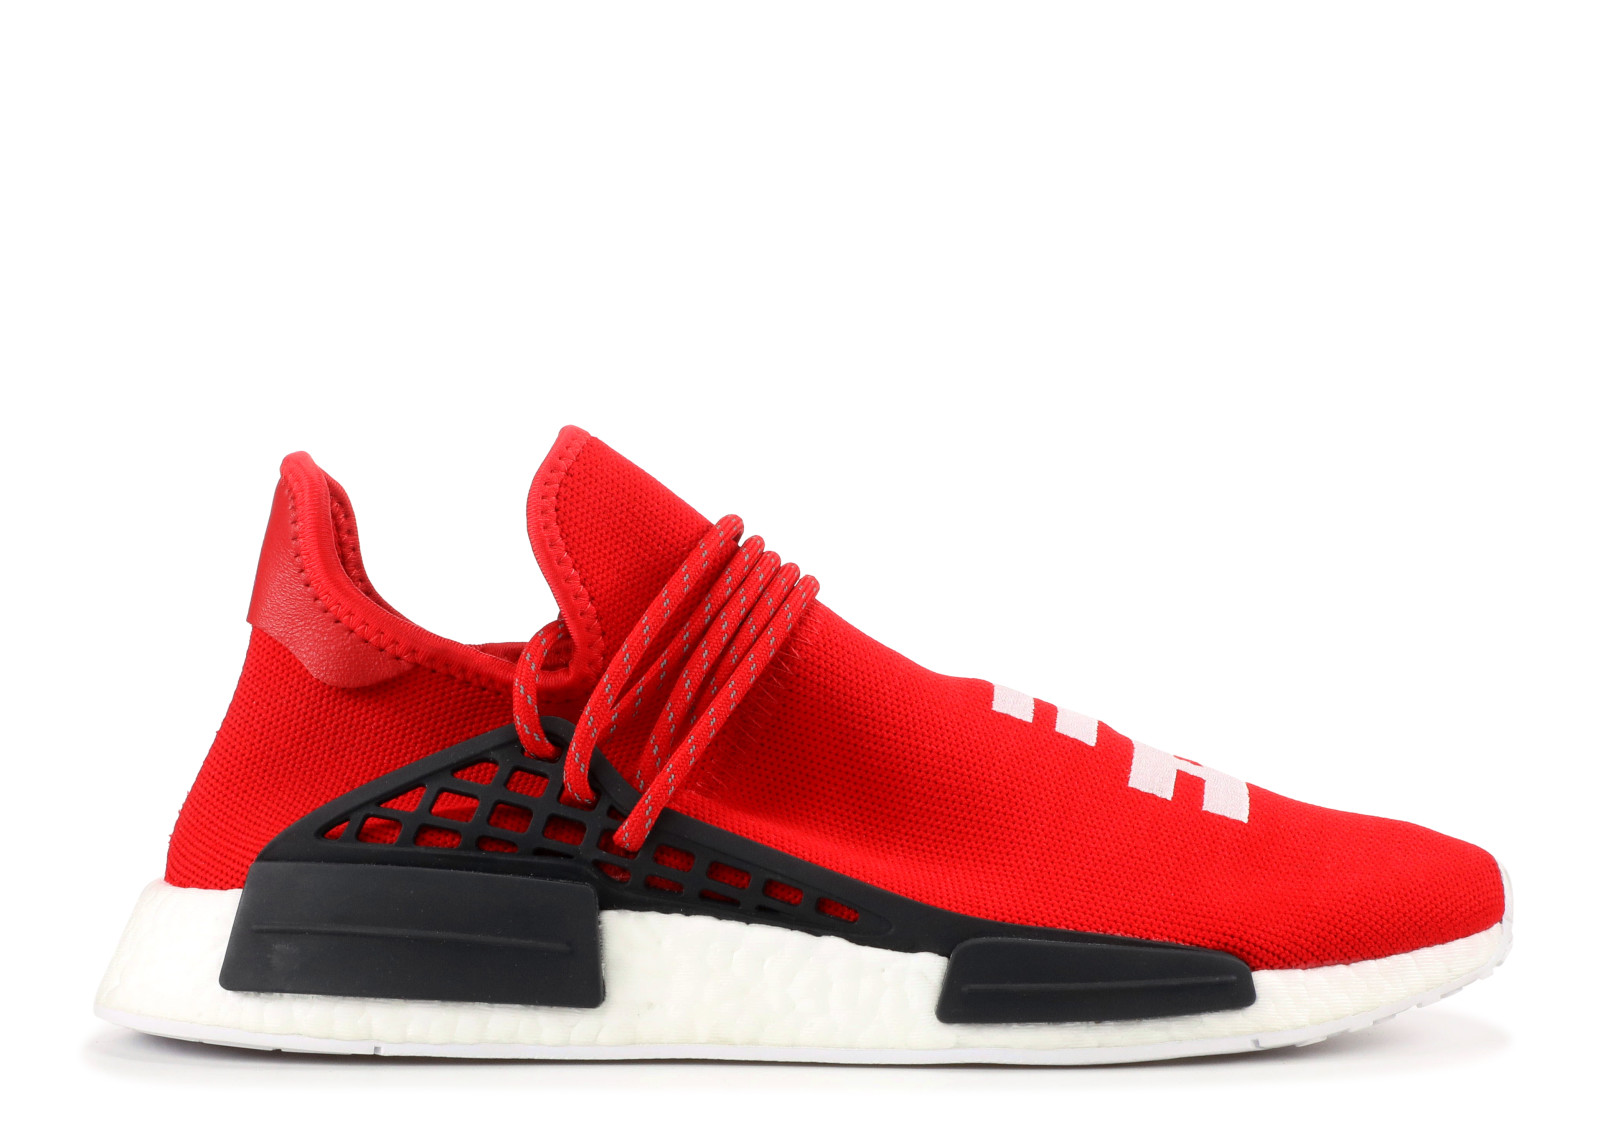 Details about Pw Human Race Nmd 'Human Race' Bb0616 Size 9